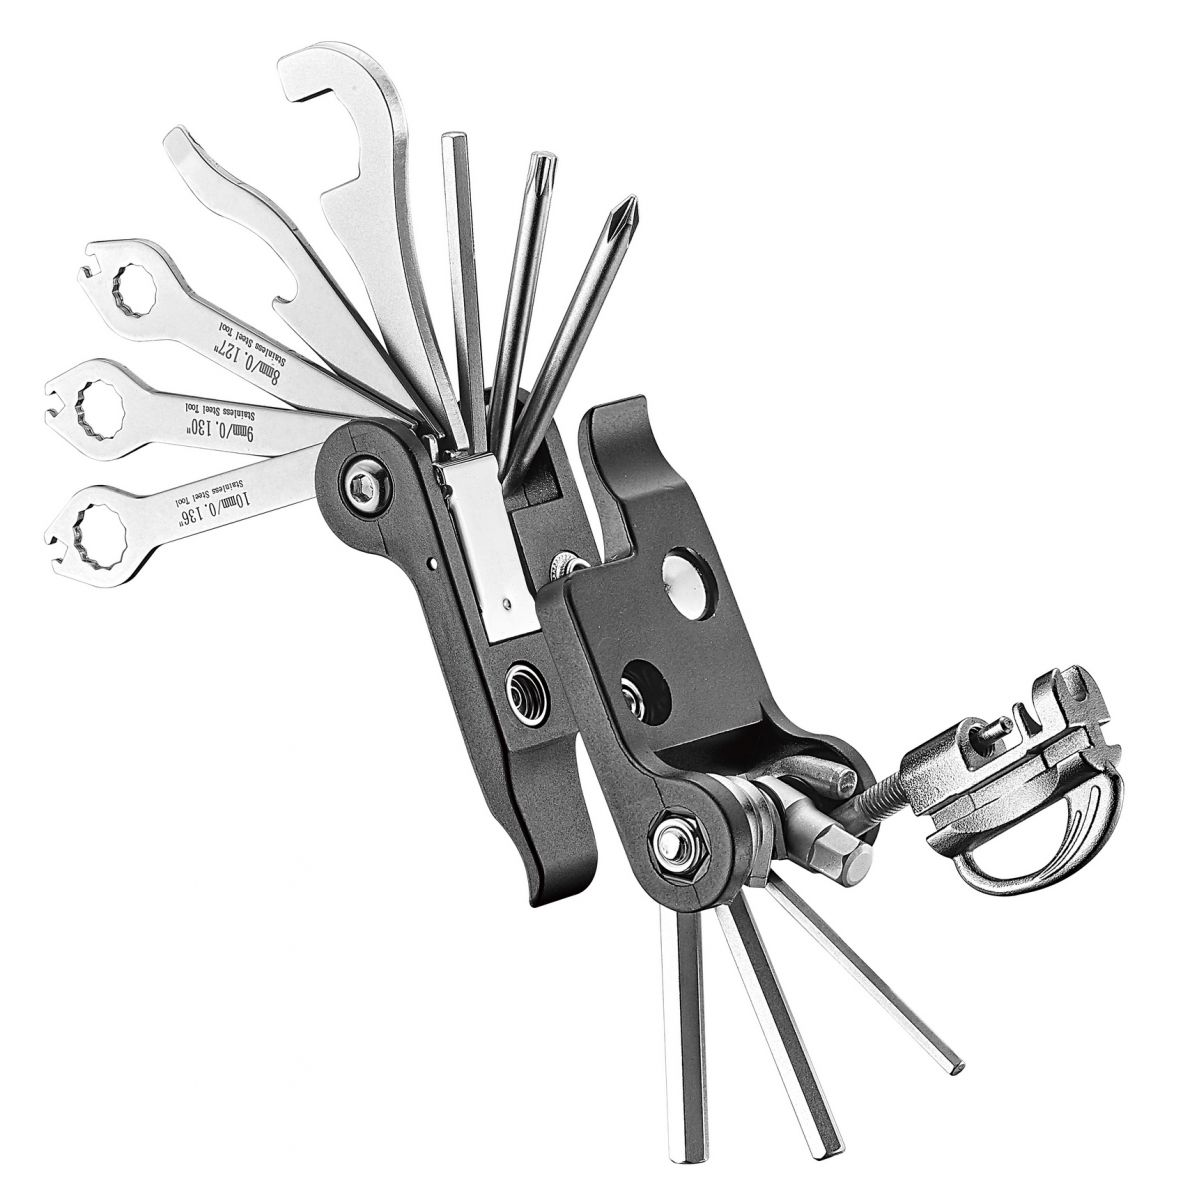 icetoolz multitool 91a4 pocket22 with pouch 22 parts black